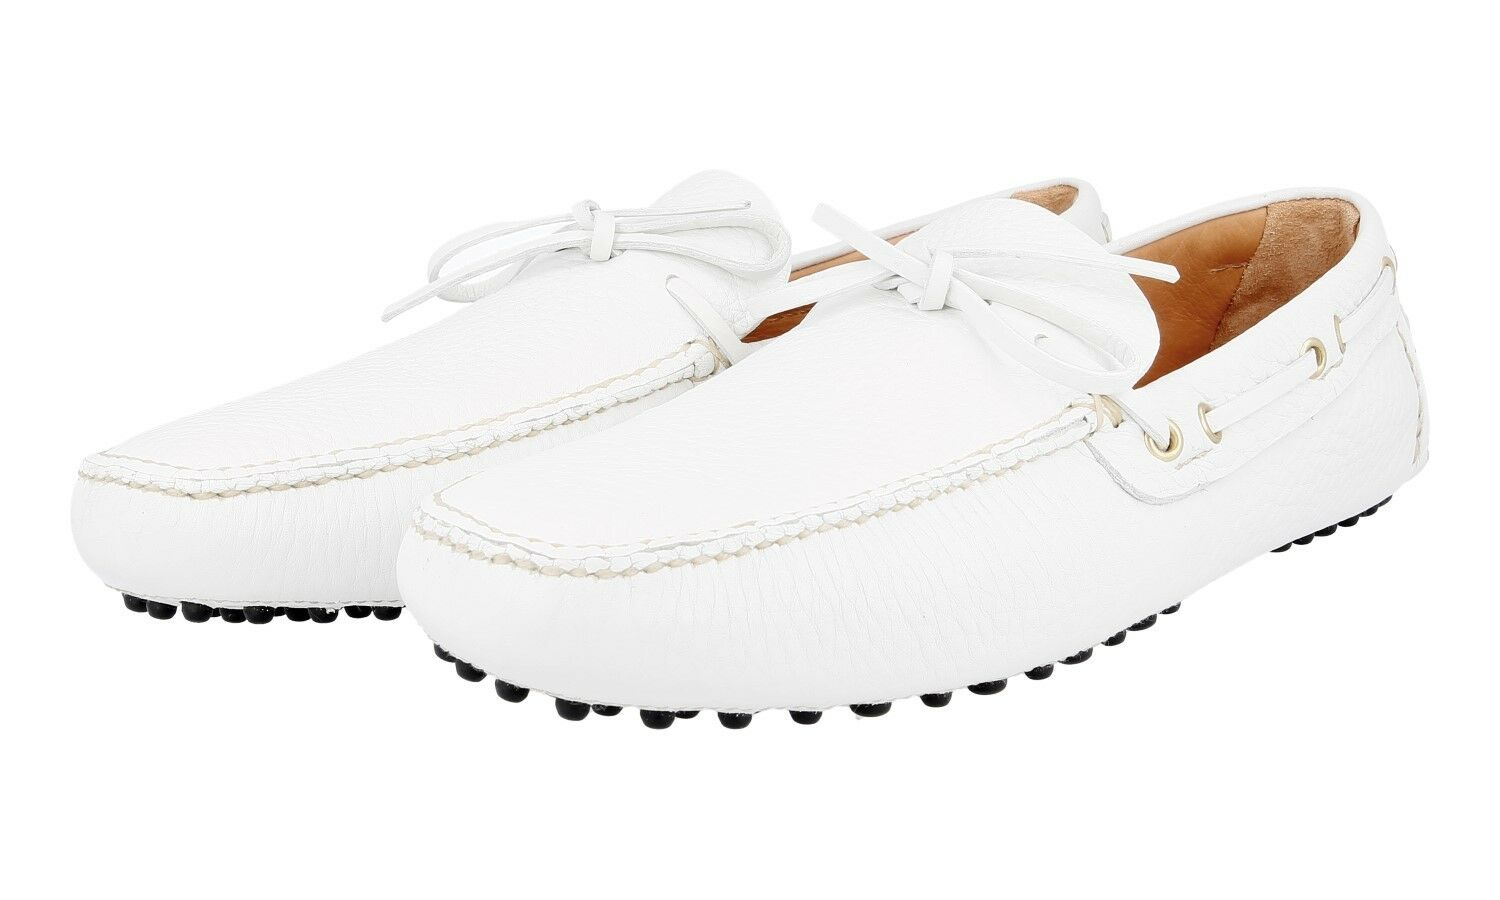 shoes CAR SHOE BY PRADA LUXUEUX KUD006 whiteHE NOUVEAUX 11,5 45,5 46